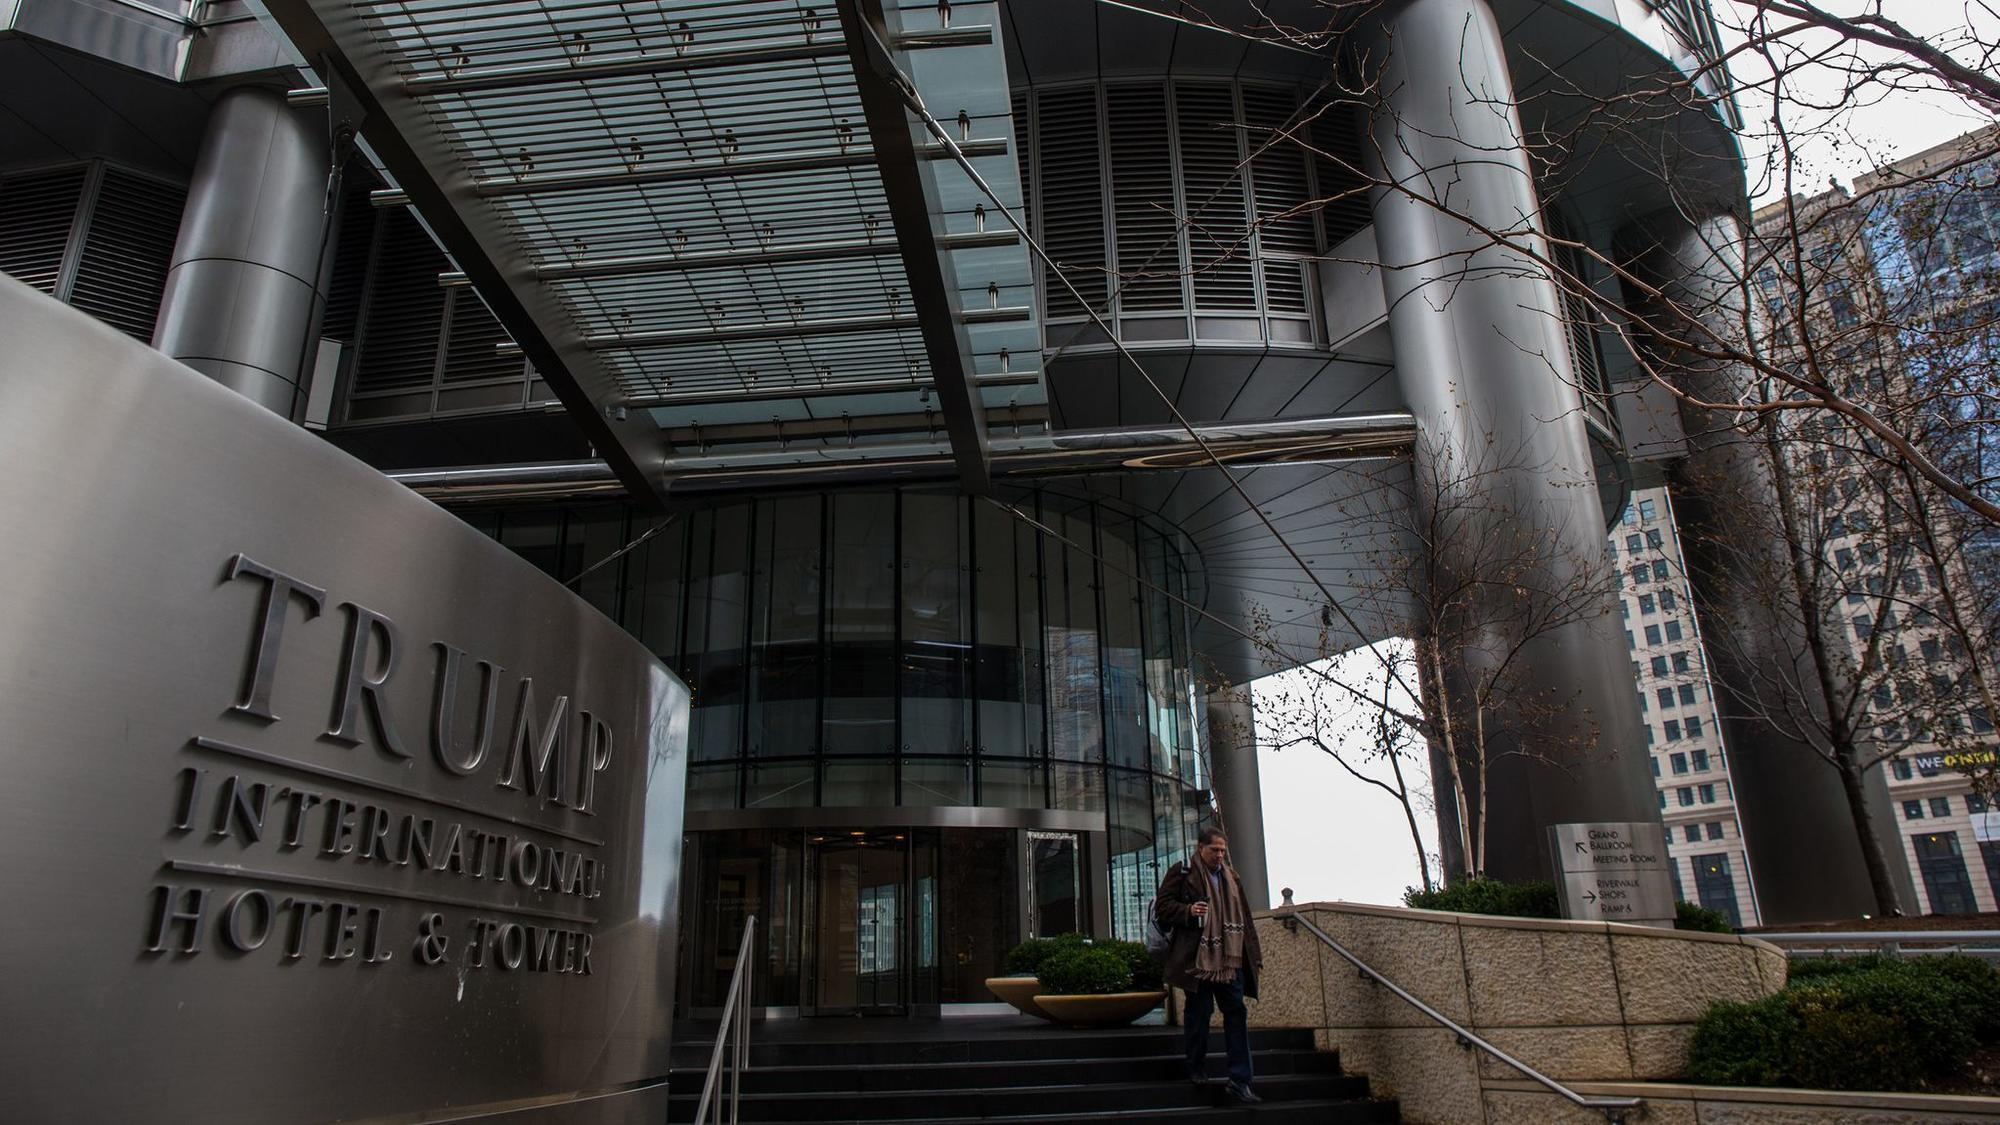 Police Find No Evidence Of Women Being Held Hostage At R Kelly S Trump Tower Residence Chicago Tribune